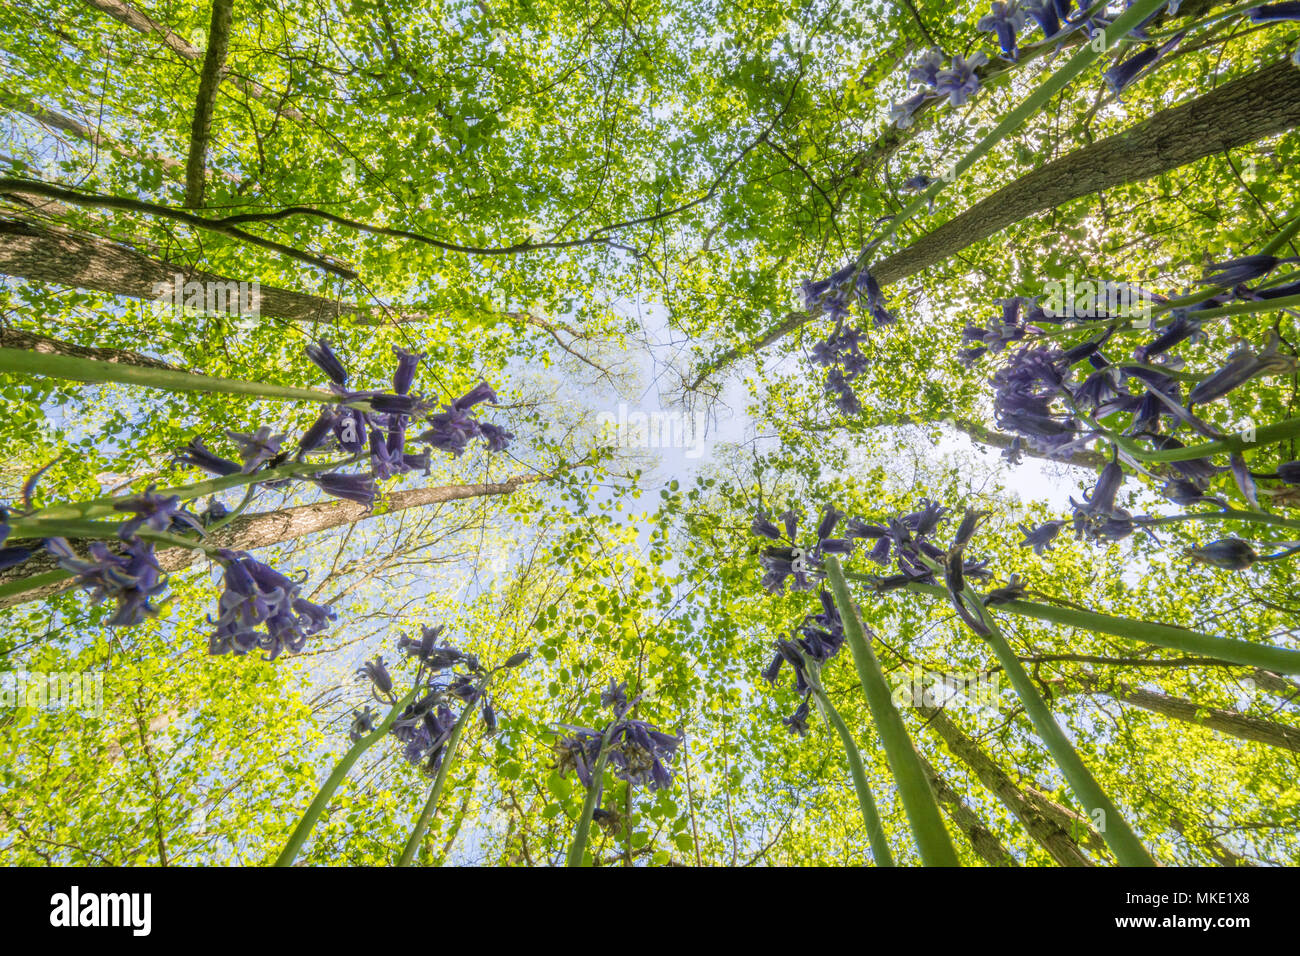 Worm's eye view of a Hampshire bluebell wood looking up into the canopy on a sunny spring day - Stock Image